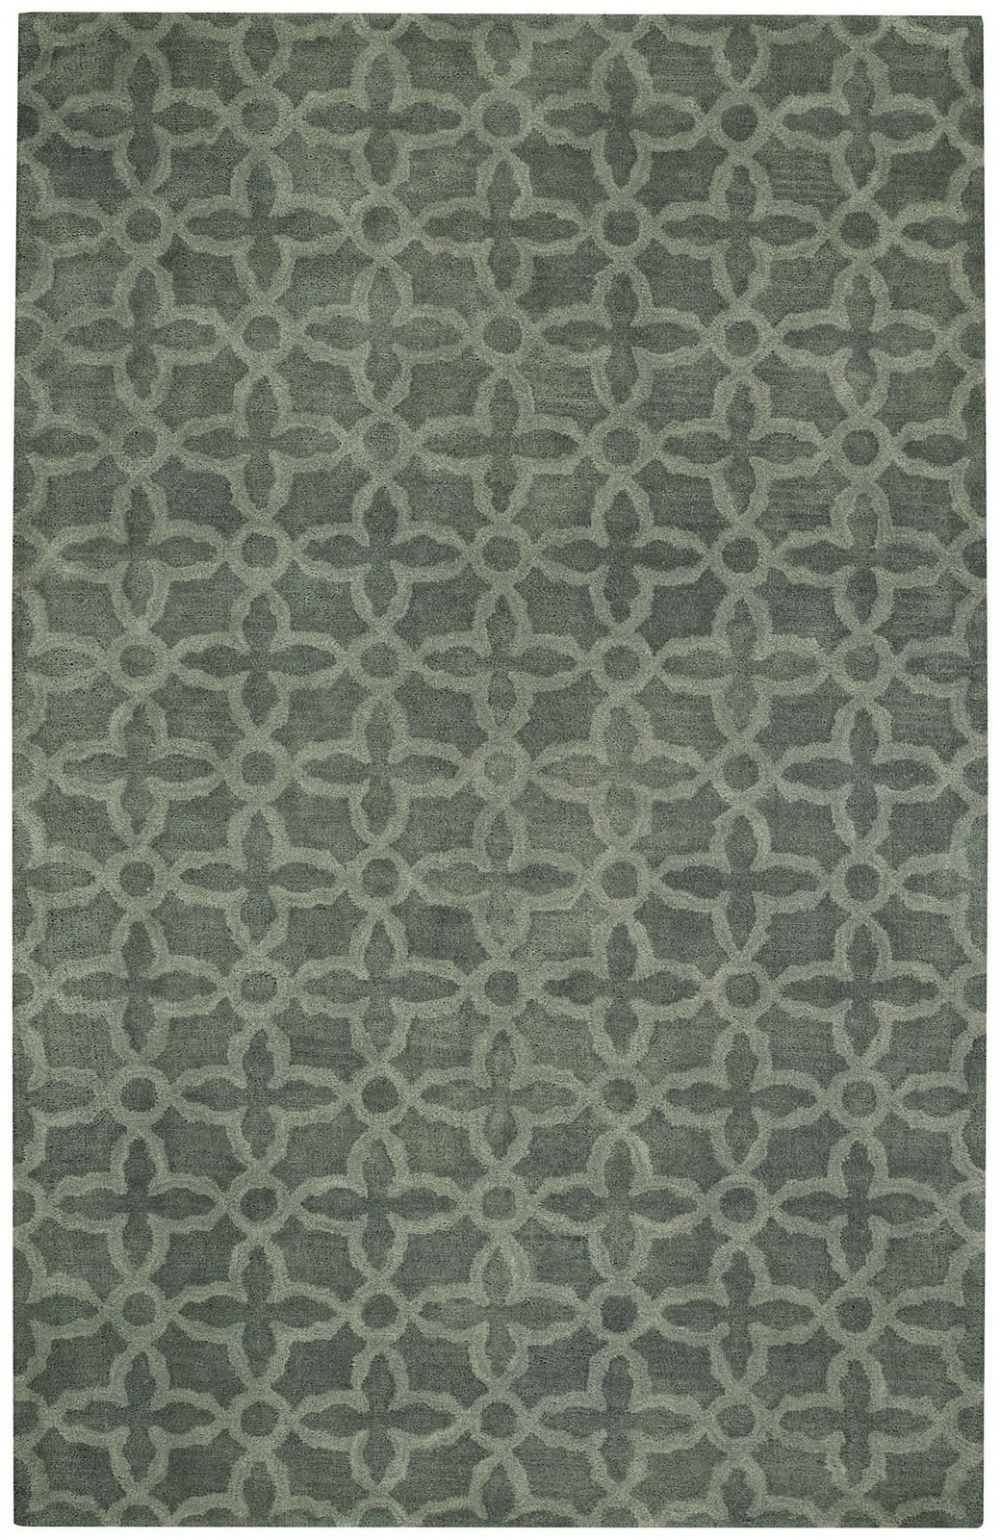 capel albemarle-gate contemporary area rug collection